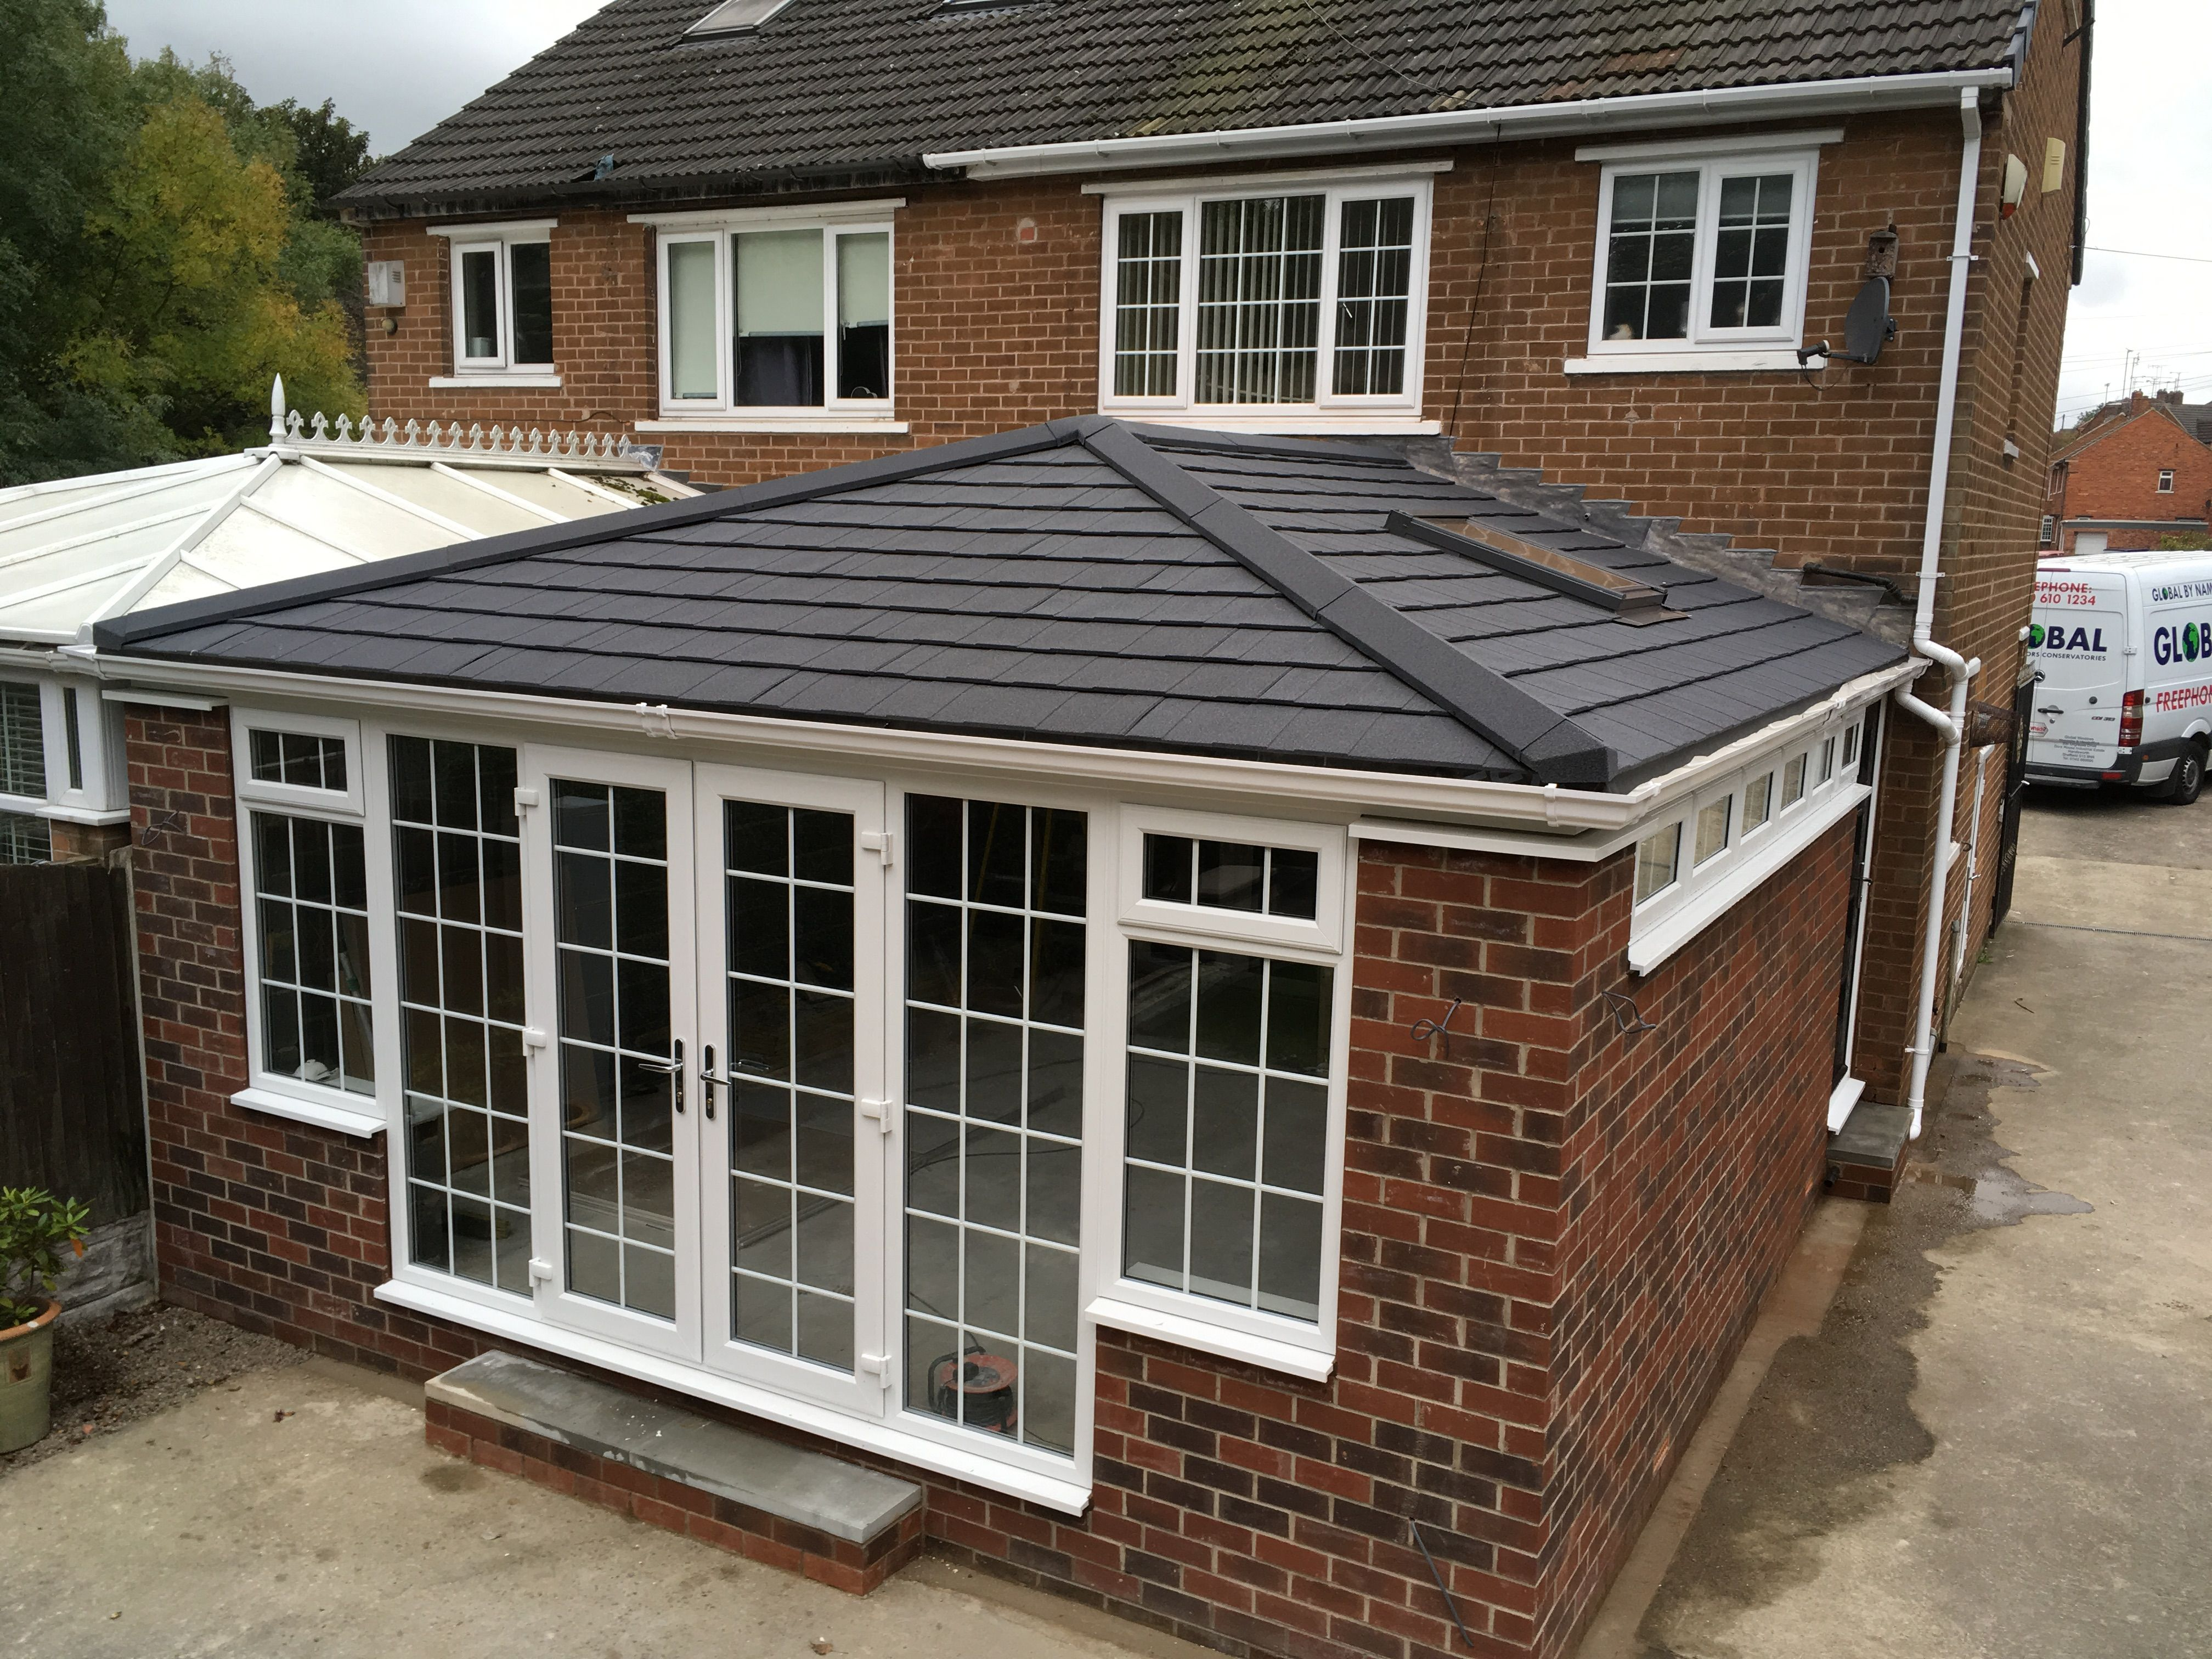 Newly Built Conservatory With Guardian Warm Roof And Georgian Bar Upvc French Doors And Windows Upvc French Doors Double Glazing Warm Roof